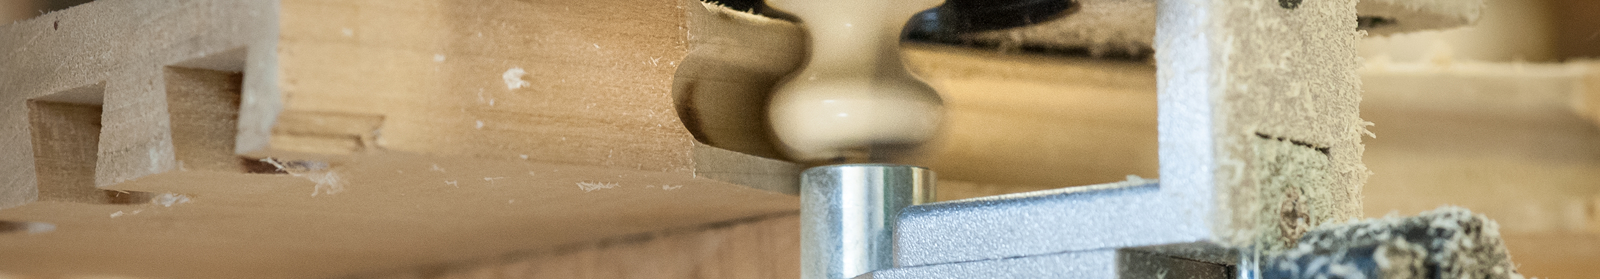 Axcaliber Router Cutters